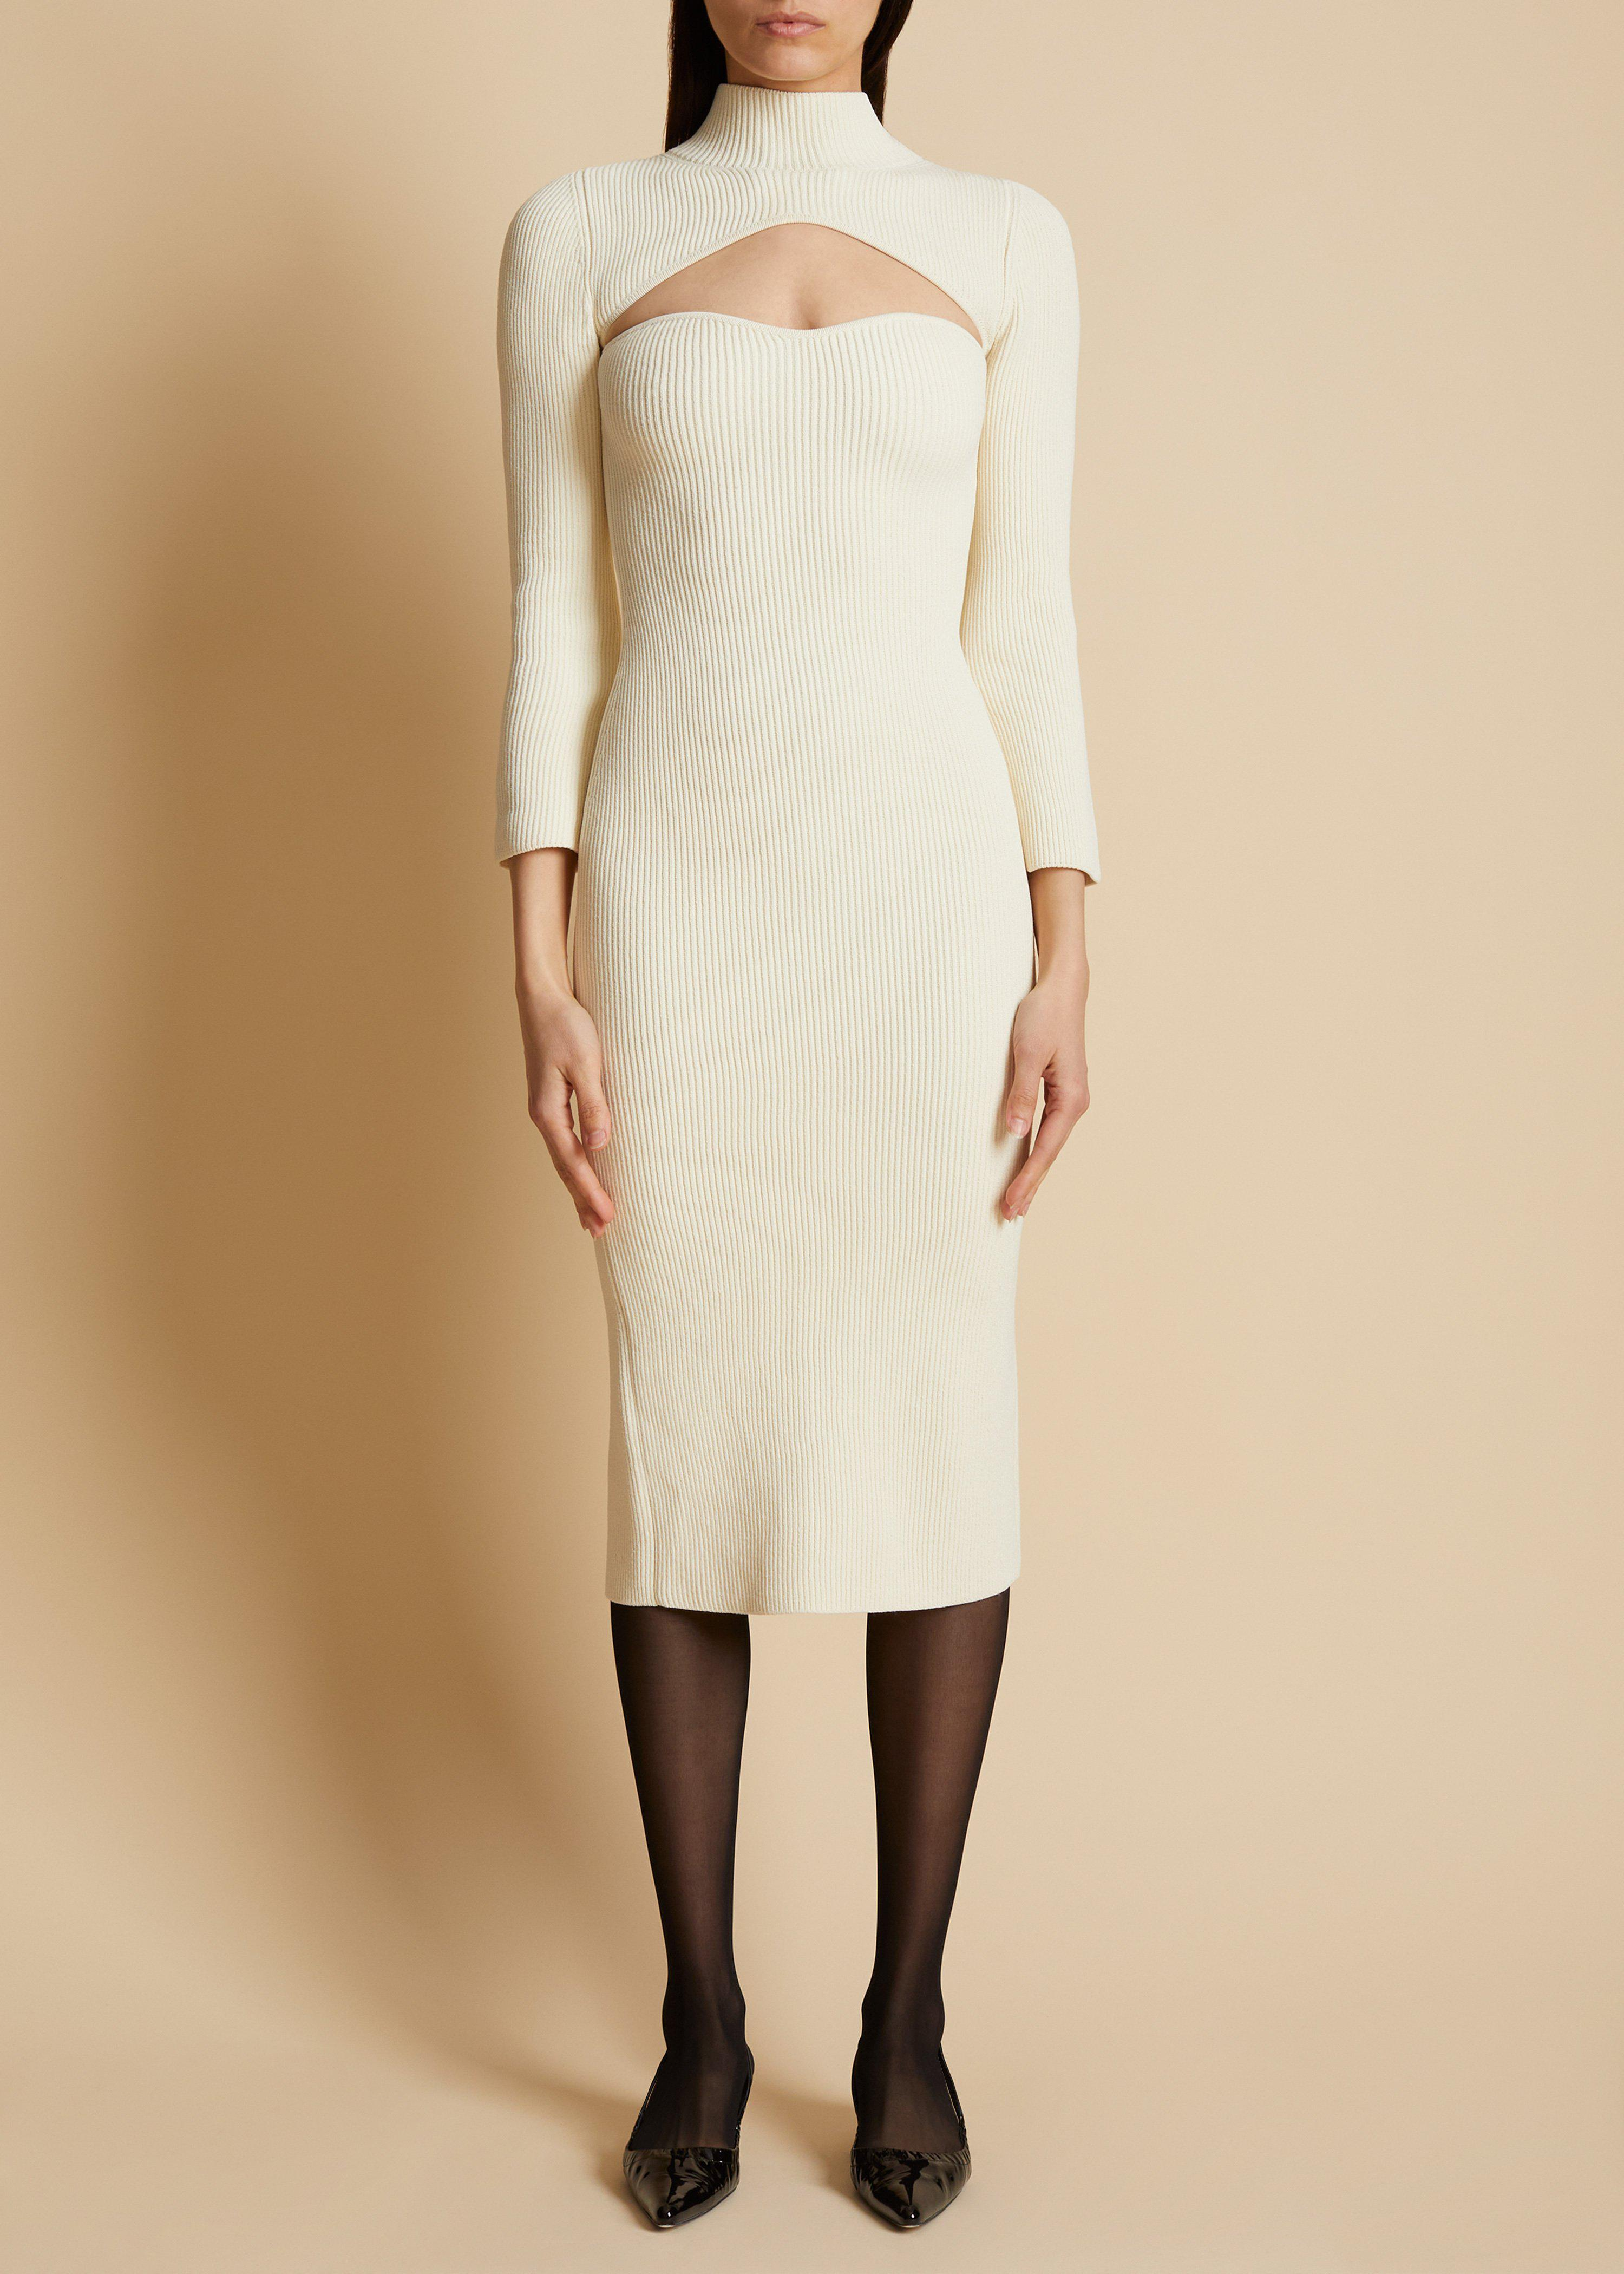 The Mischa Dress in Ivory 1